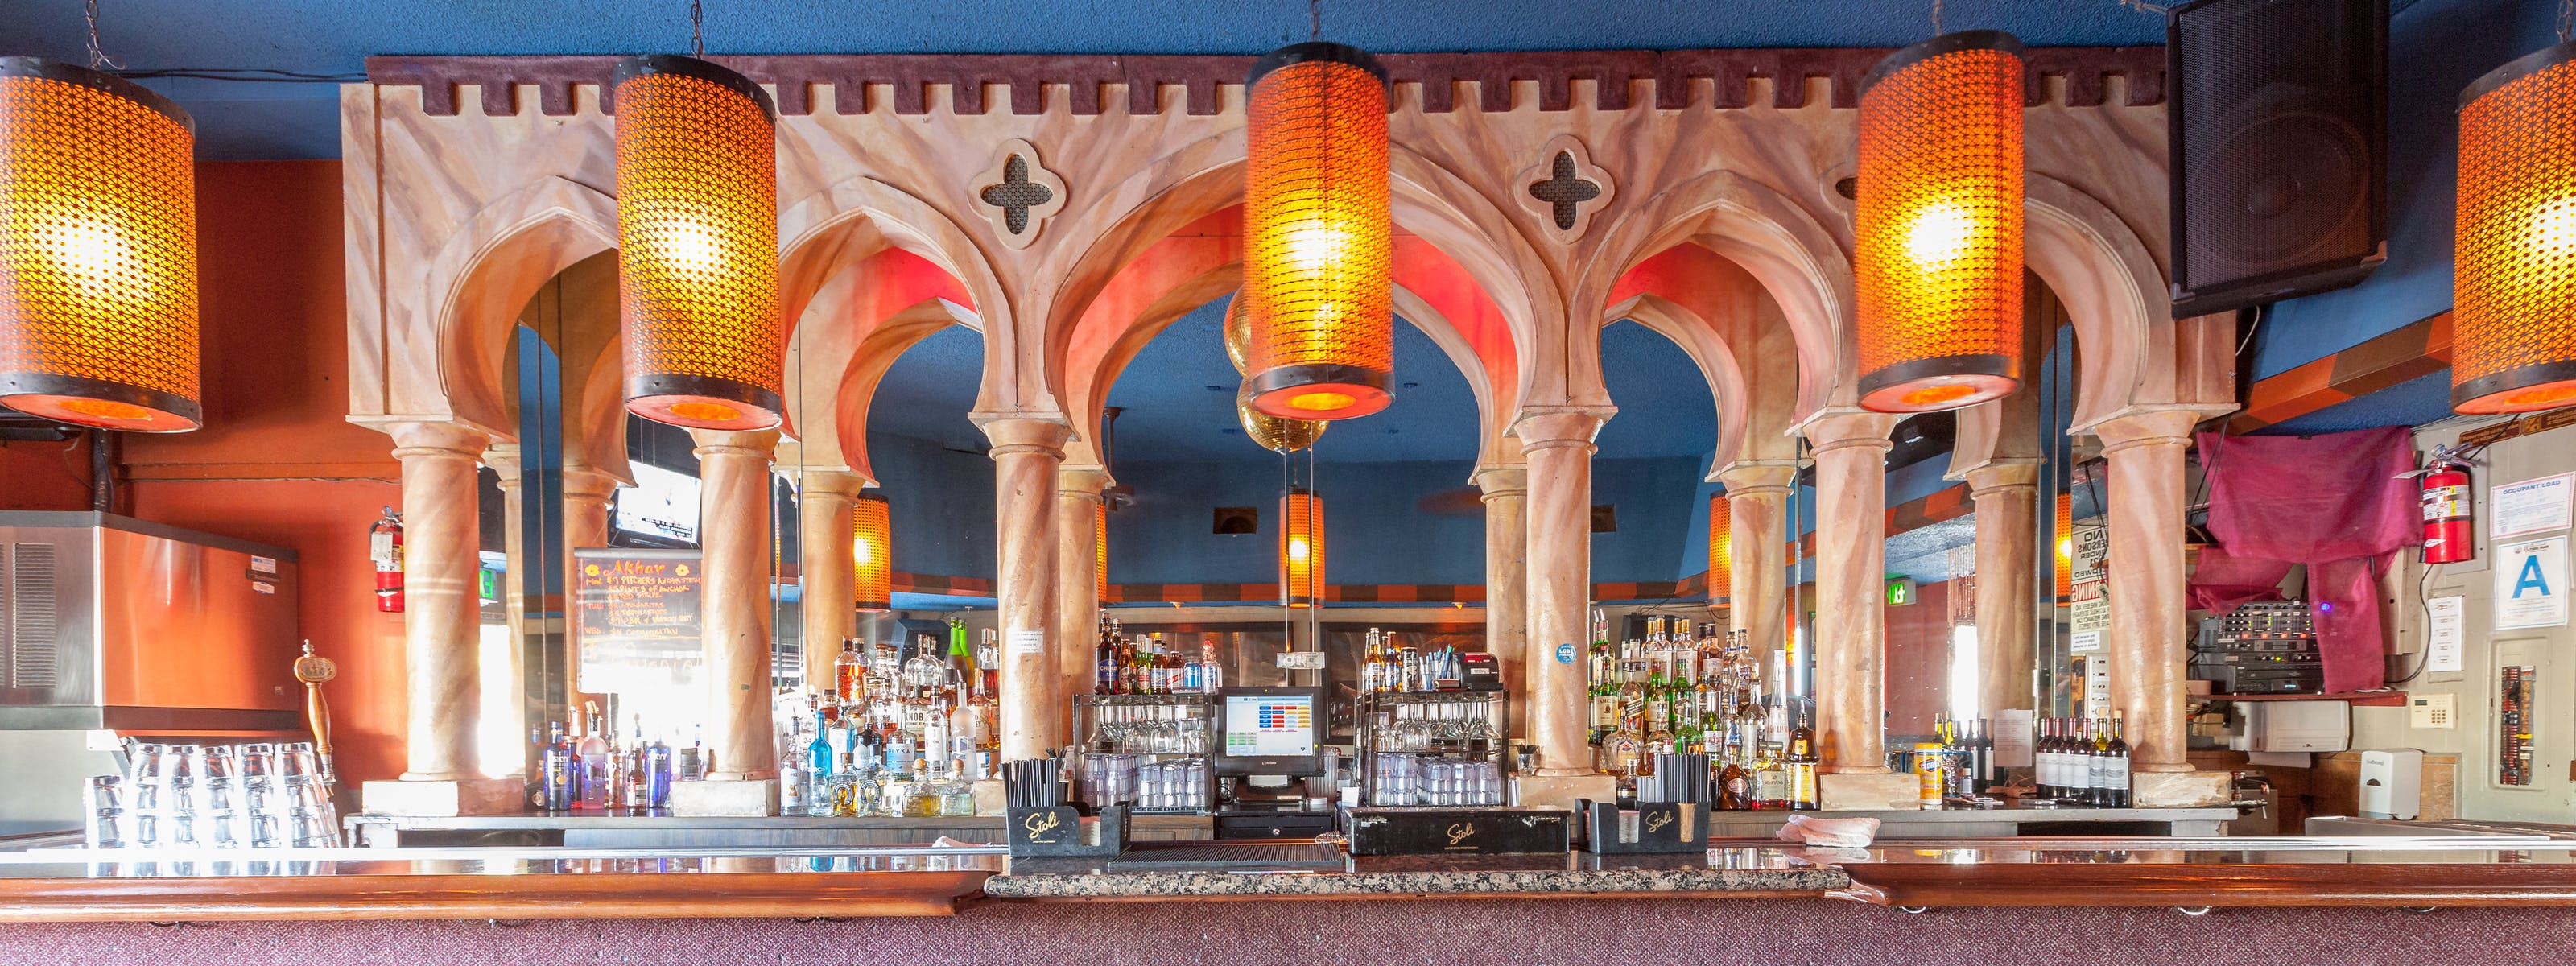 The 19 Most Fun Bars In LA Right Now - Los Angeles - The Infatuation